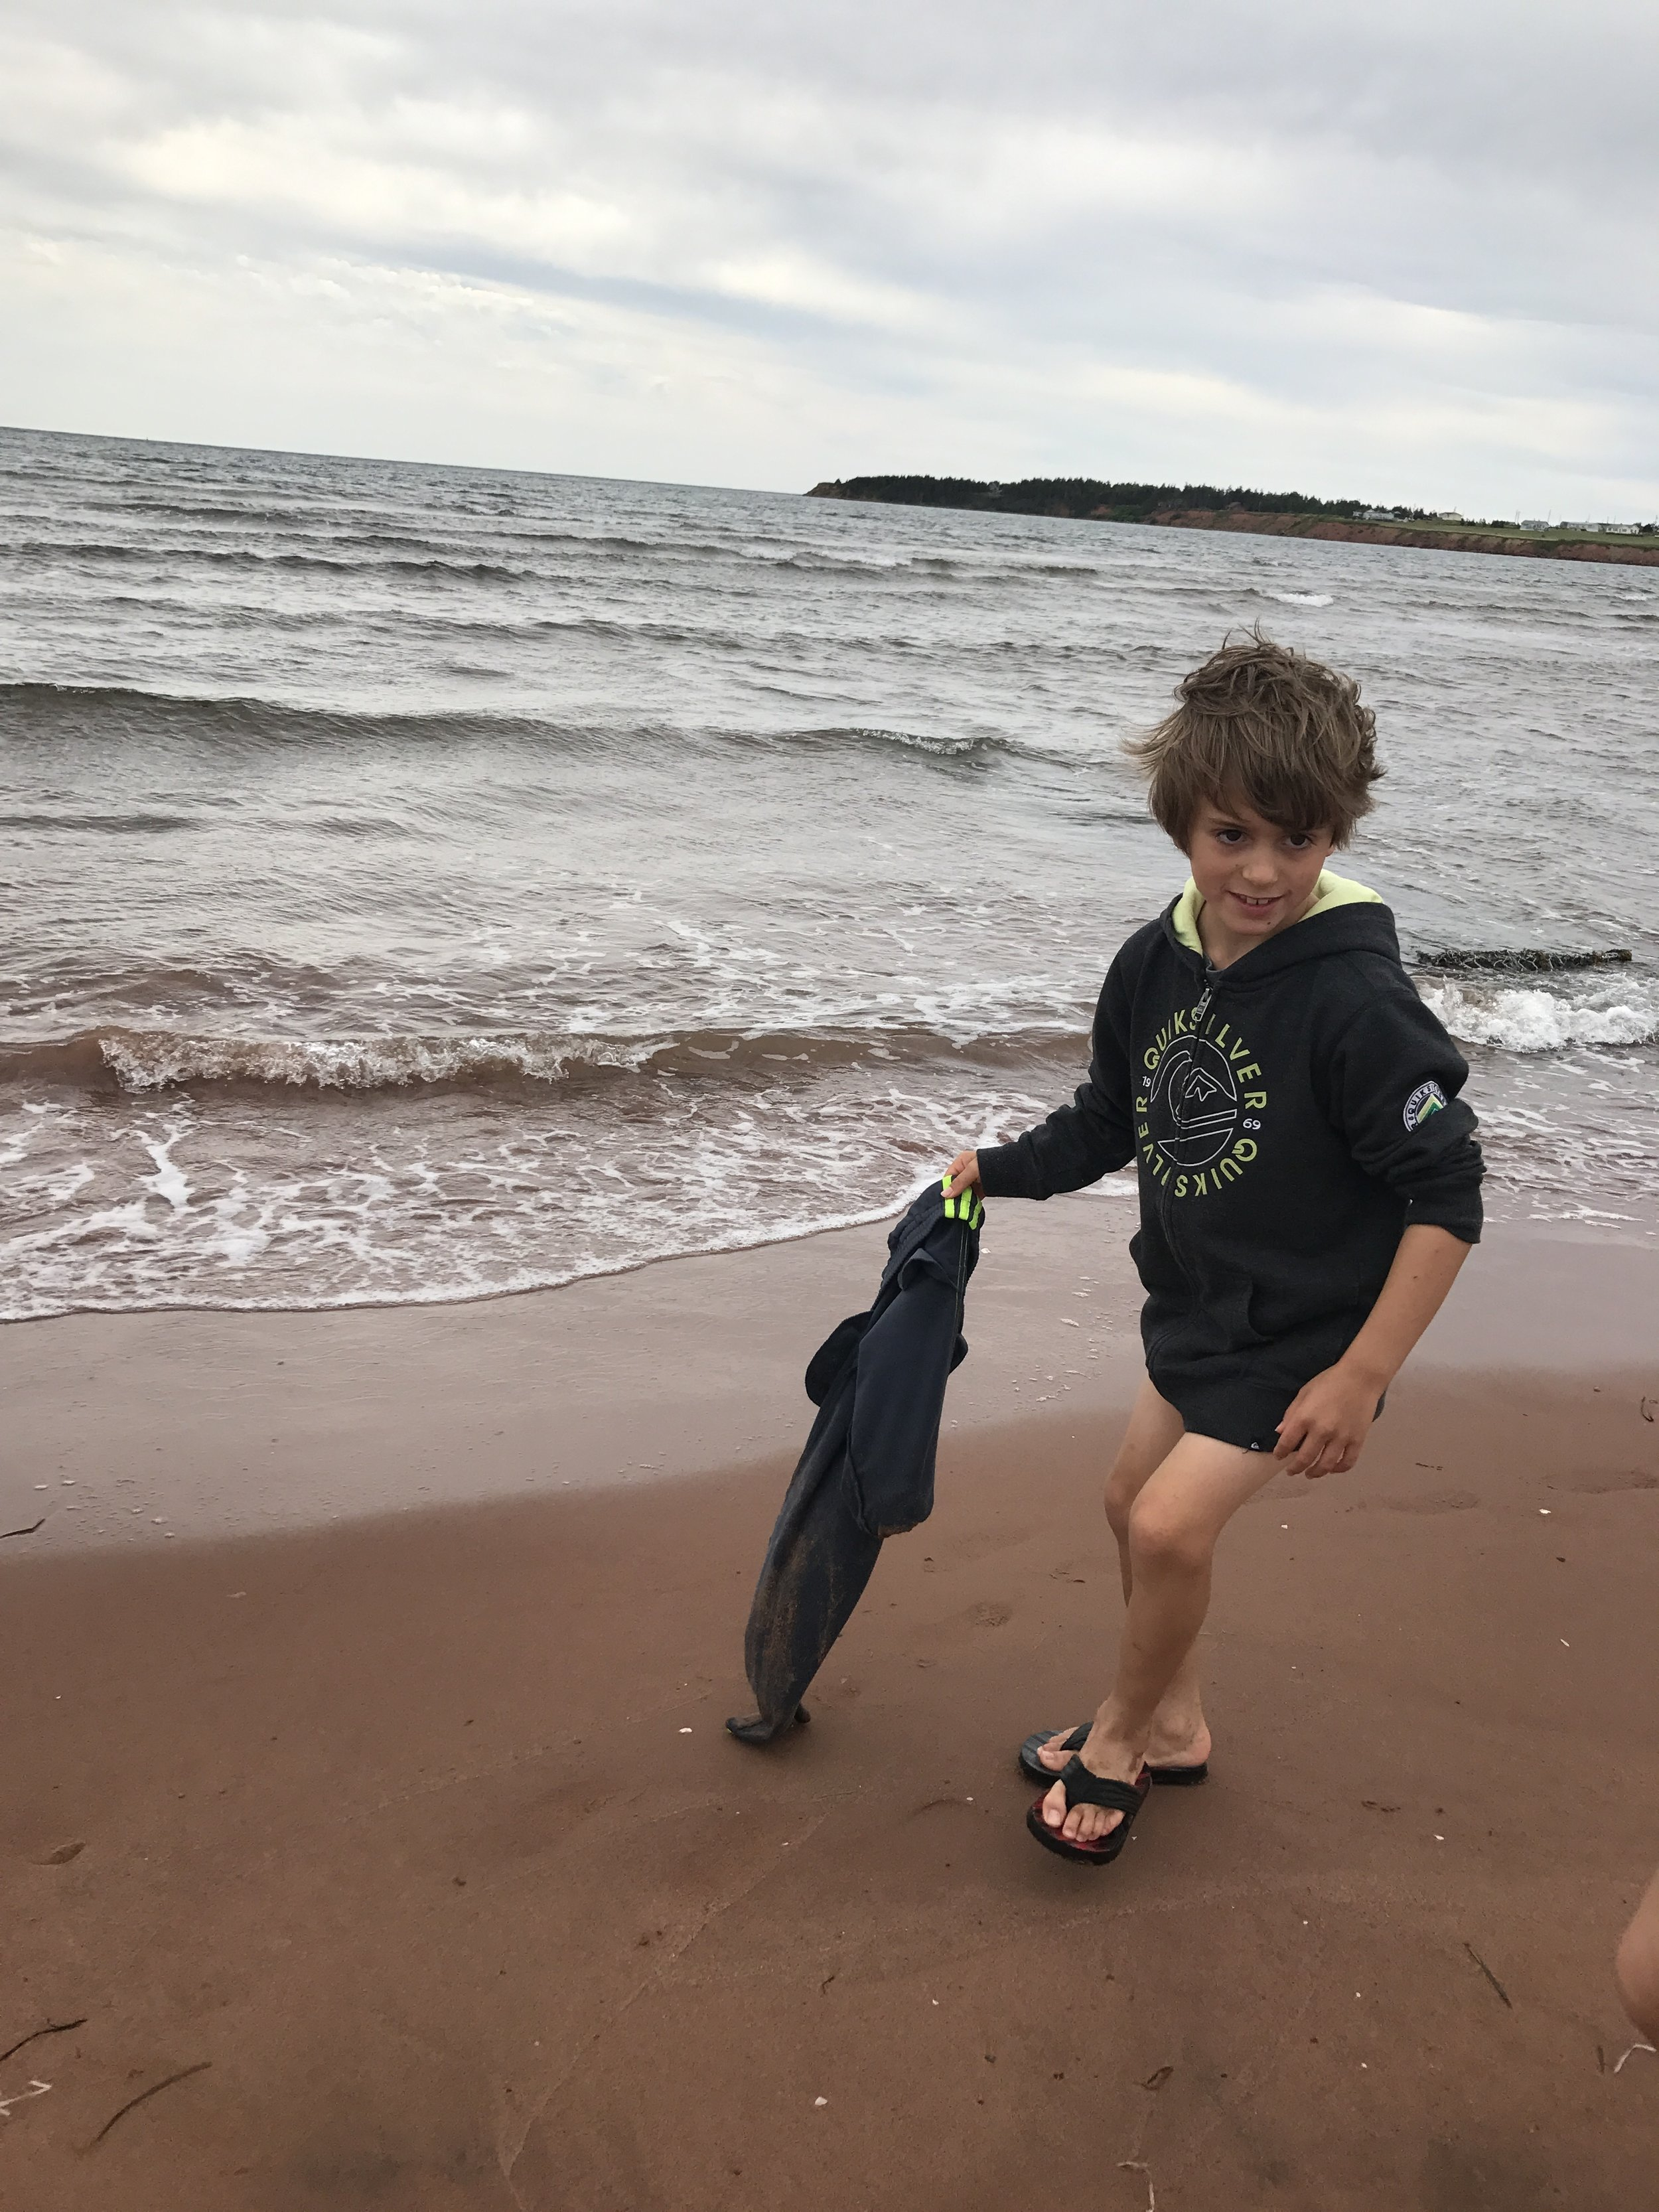 I just can't keep this kid dry...carrying his pants...can you guess why?